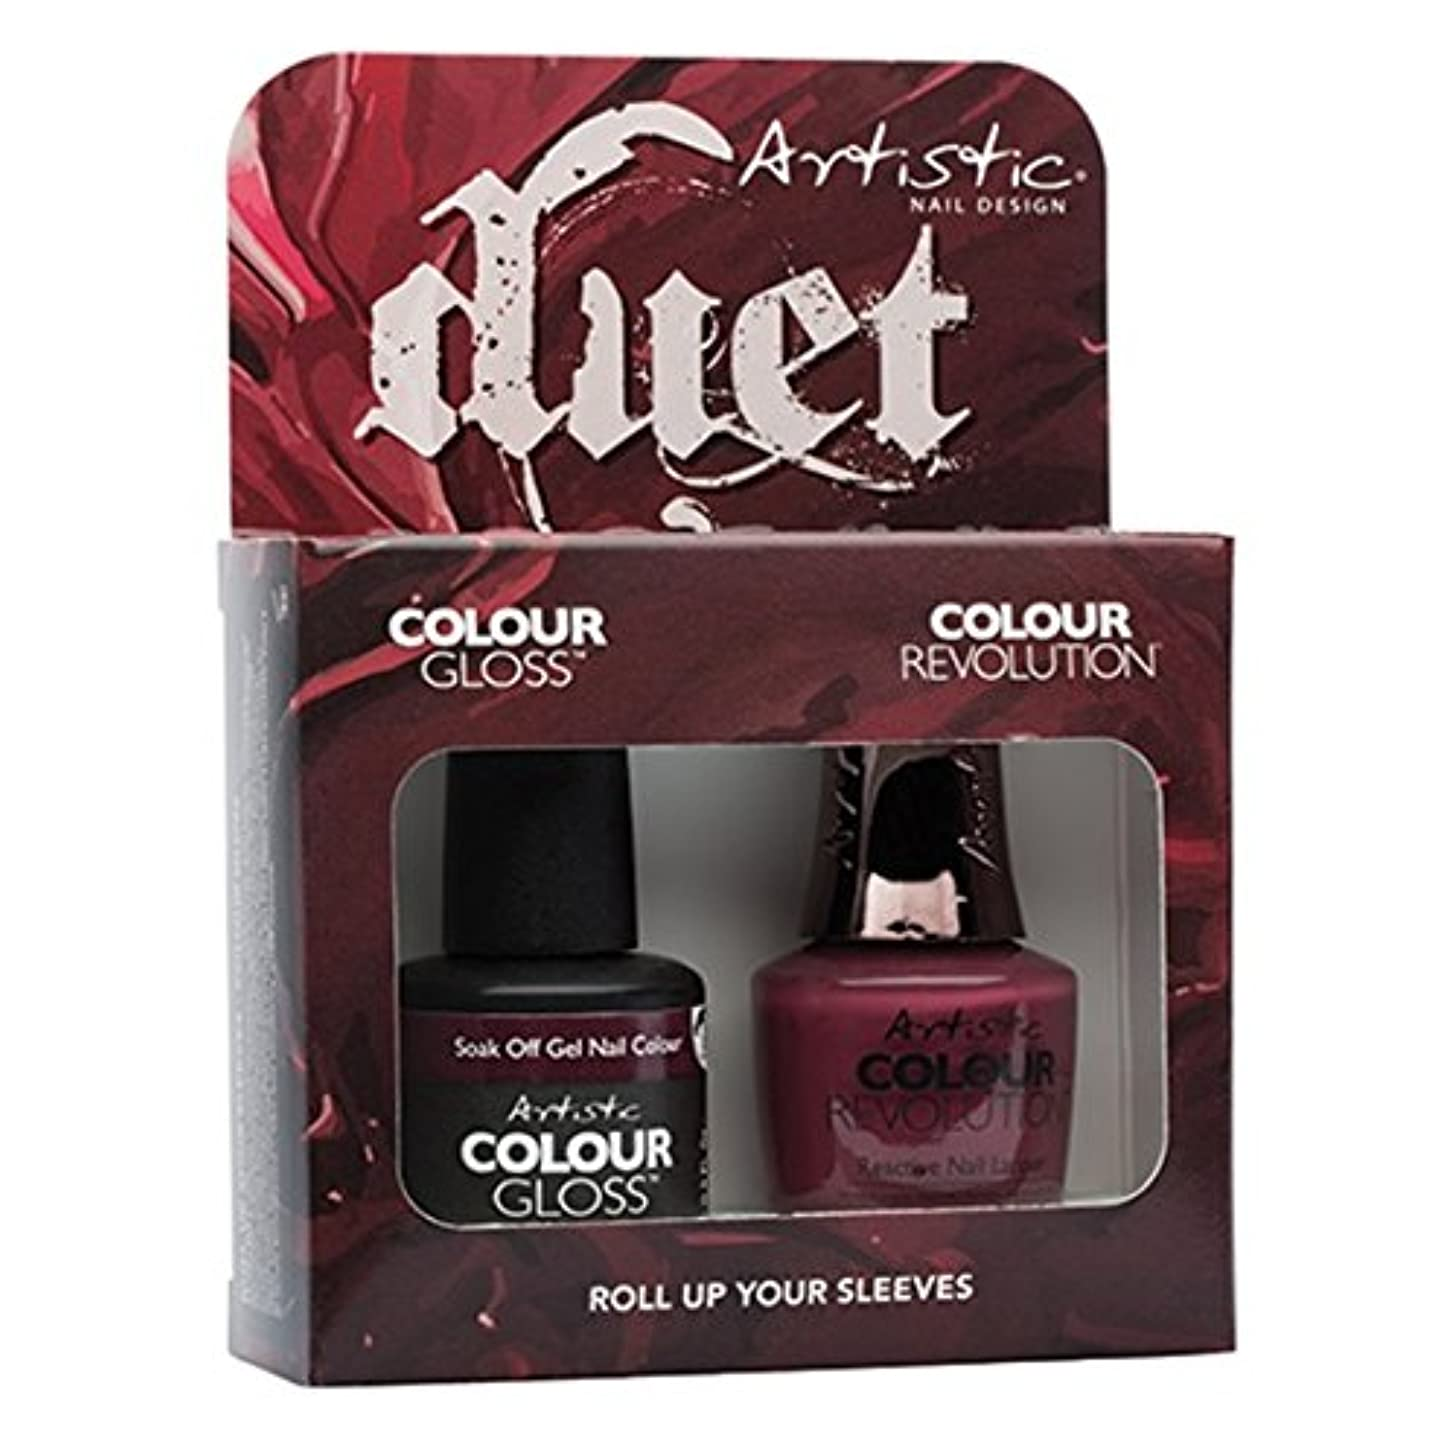 吹雪余韻松の木-Artistic Nail Design - Duet Gel & Polish Duo - Roll Up Your Sleeves - 15 mL / 0.5 oz